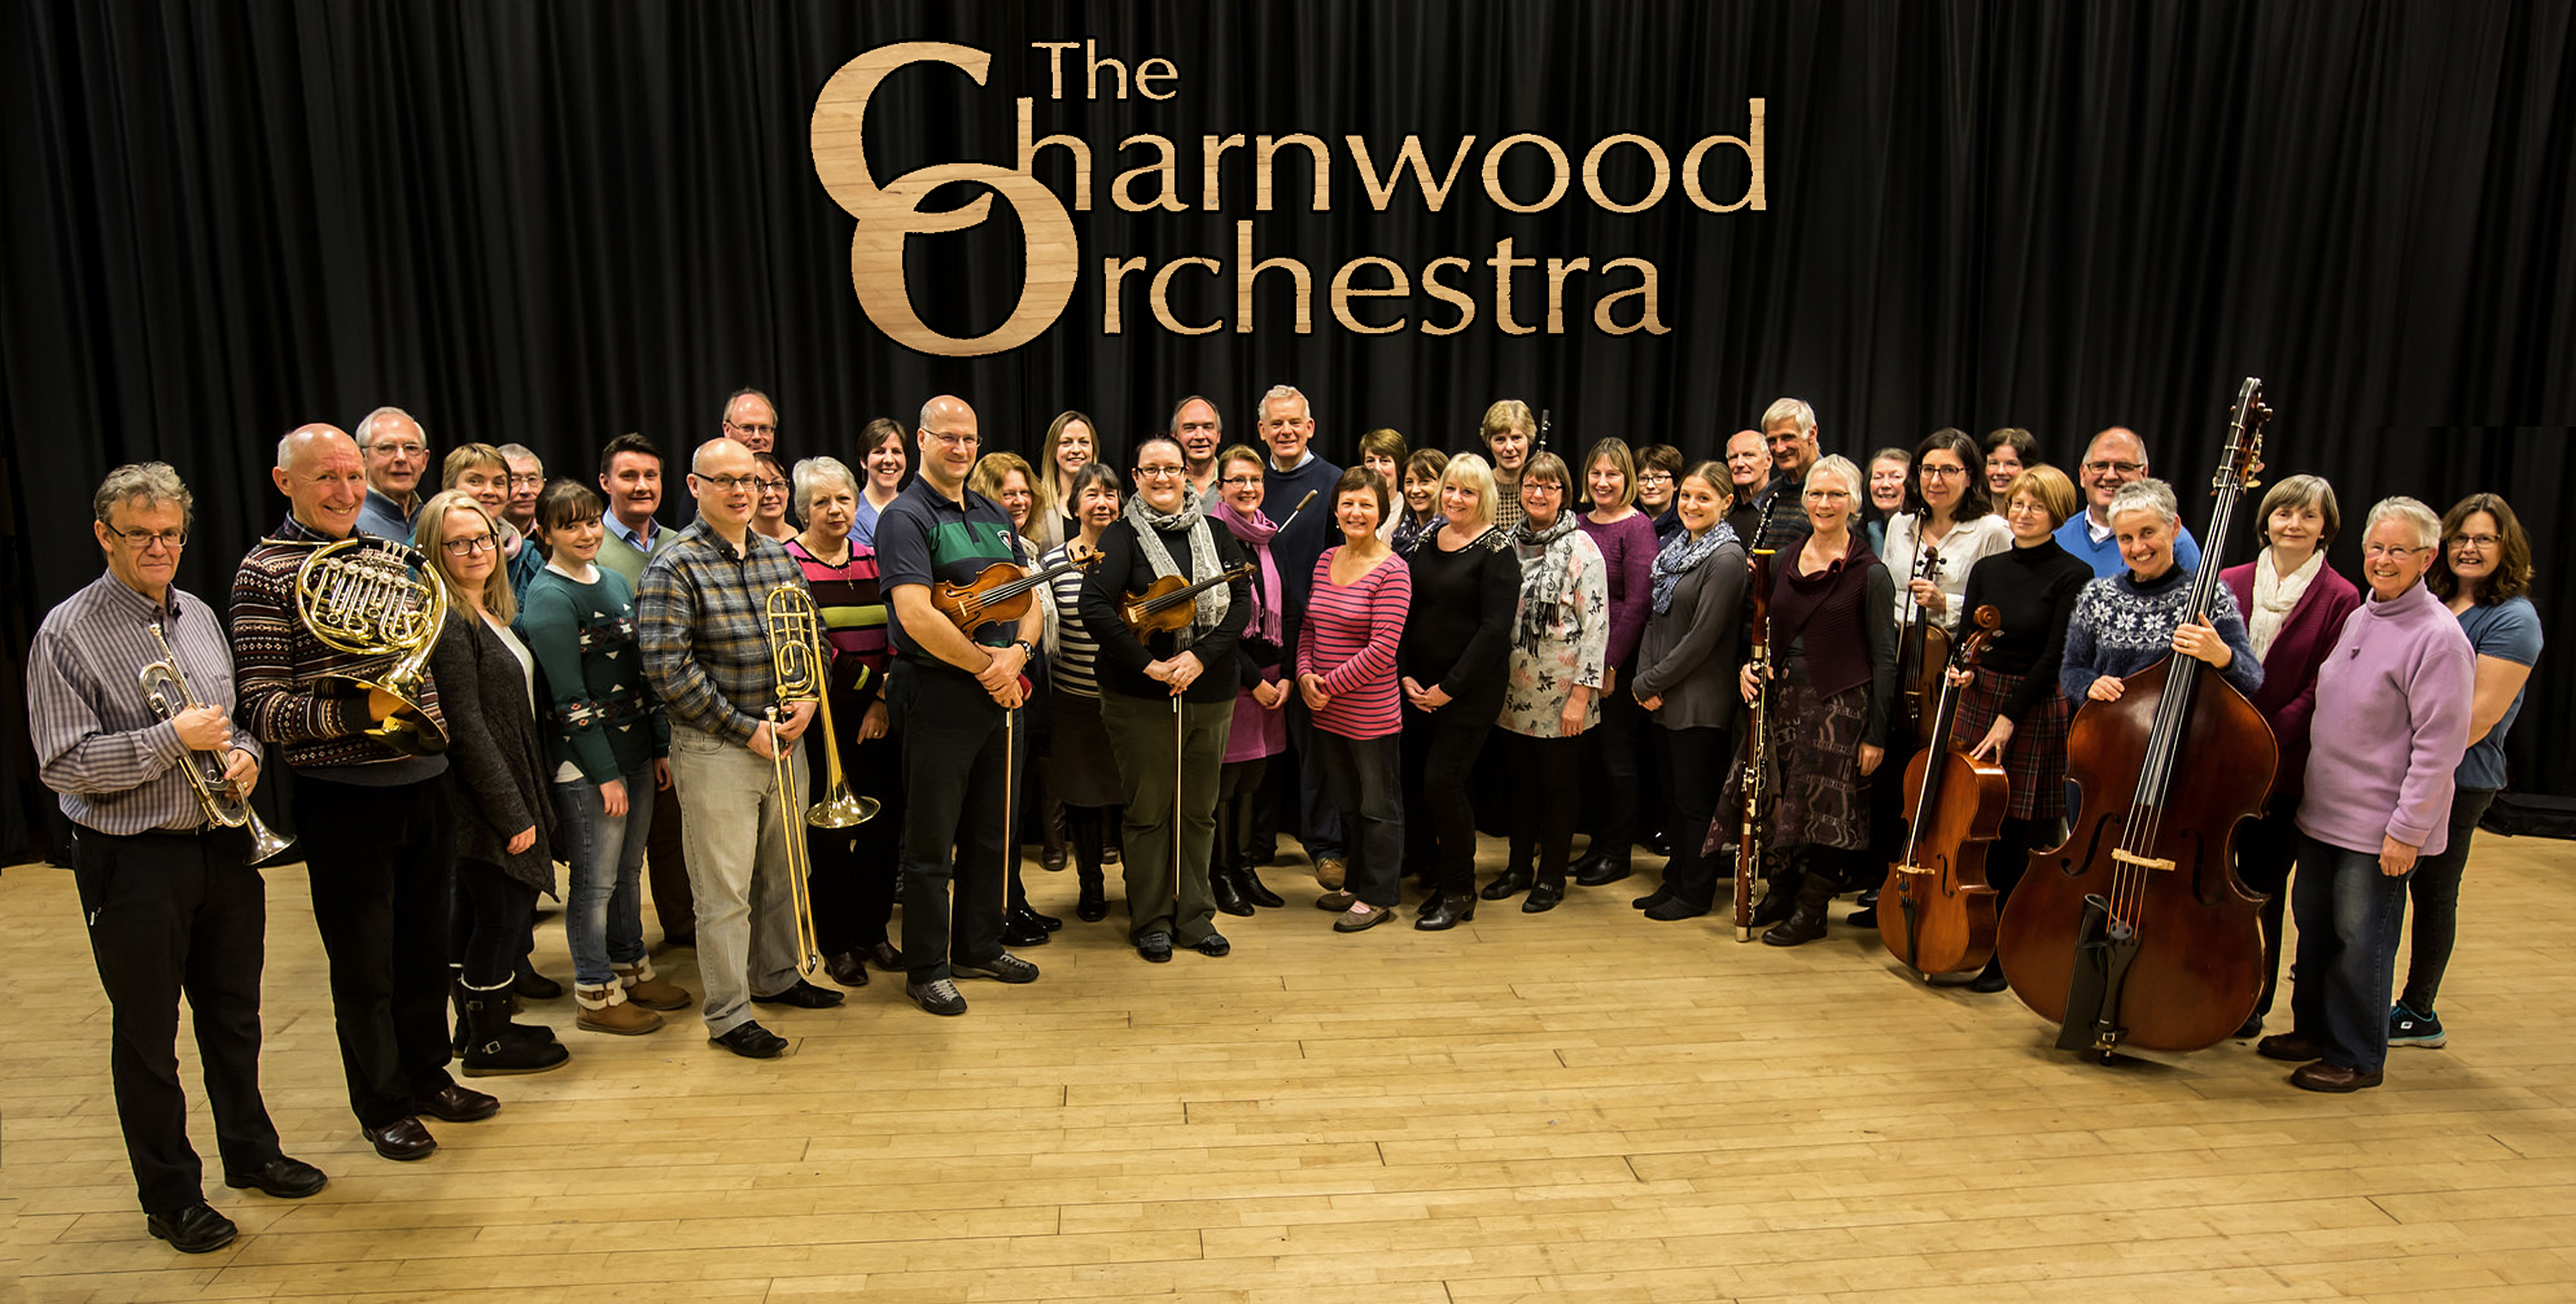 The Charnwood Orchestra